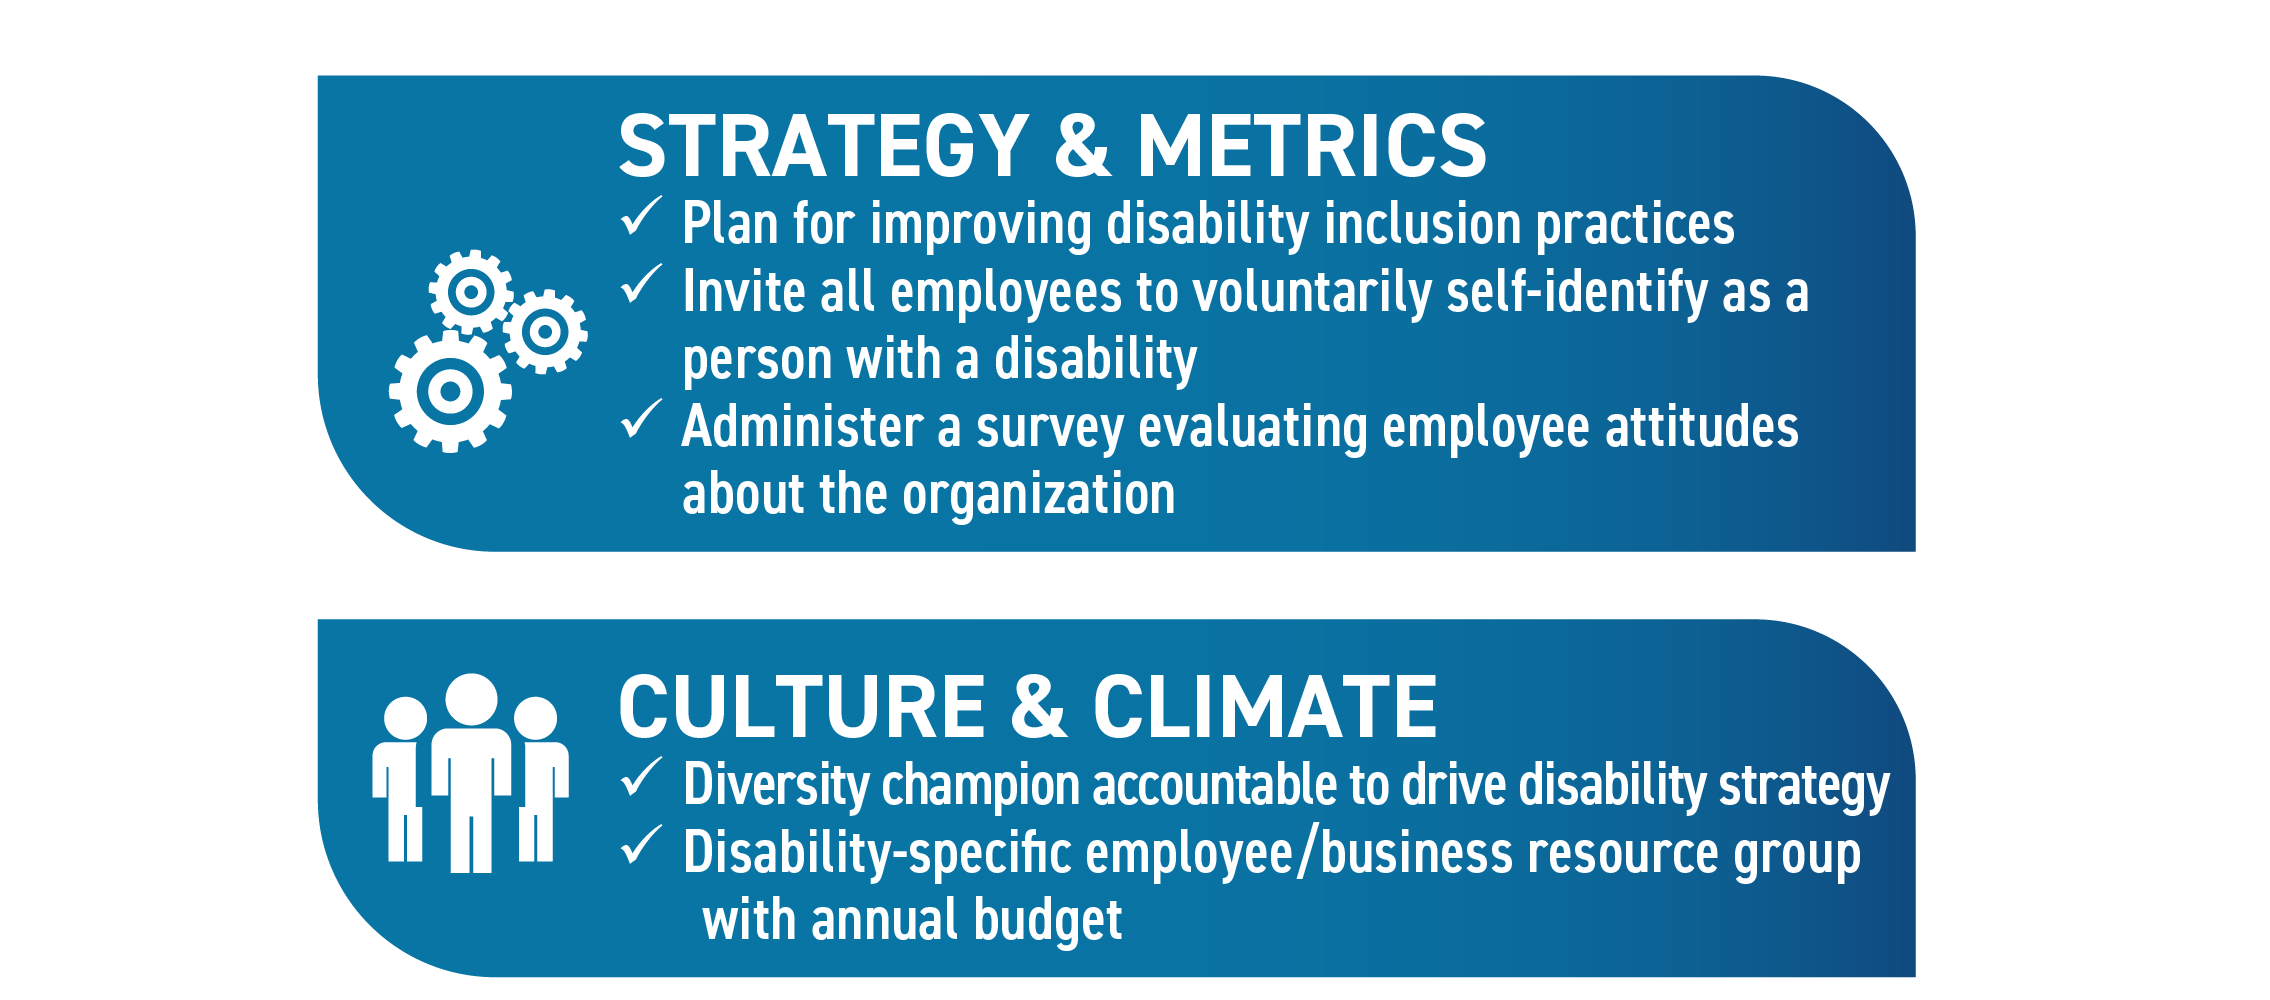 Strategy & Metrics: Plan for improving disability inclusion practices; Invite all employees to voluntarily self-identify as a person with a disability; Administer a survey evaluating employee attitudes about the organization. Culture & Climate: Diversity champion accountable to drive disability strategy; Disability-specific employee/business resource group with annual budget.